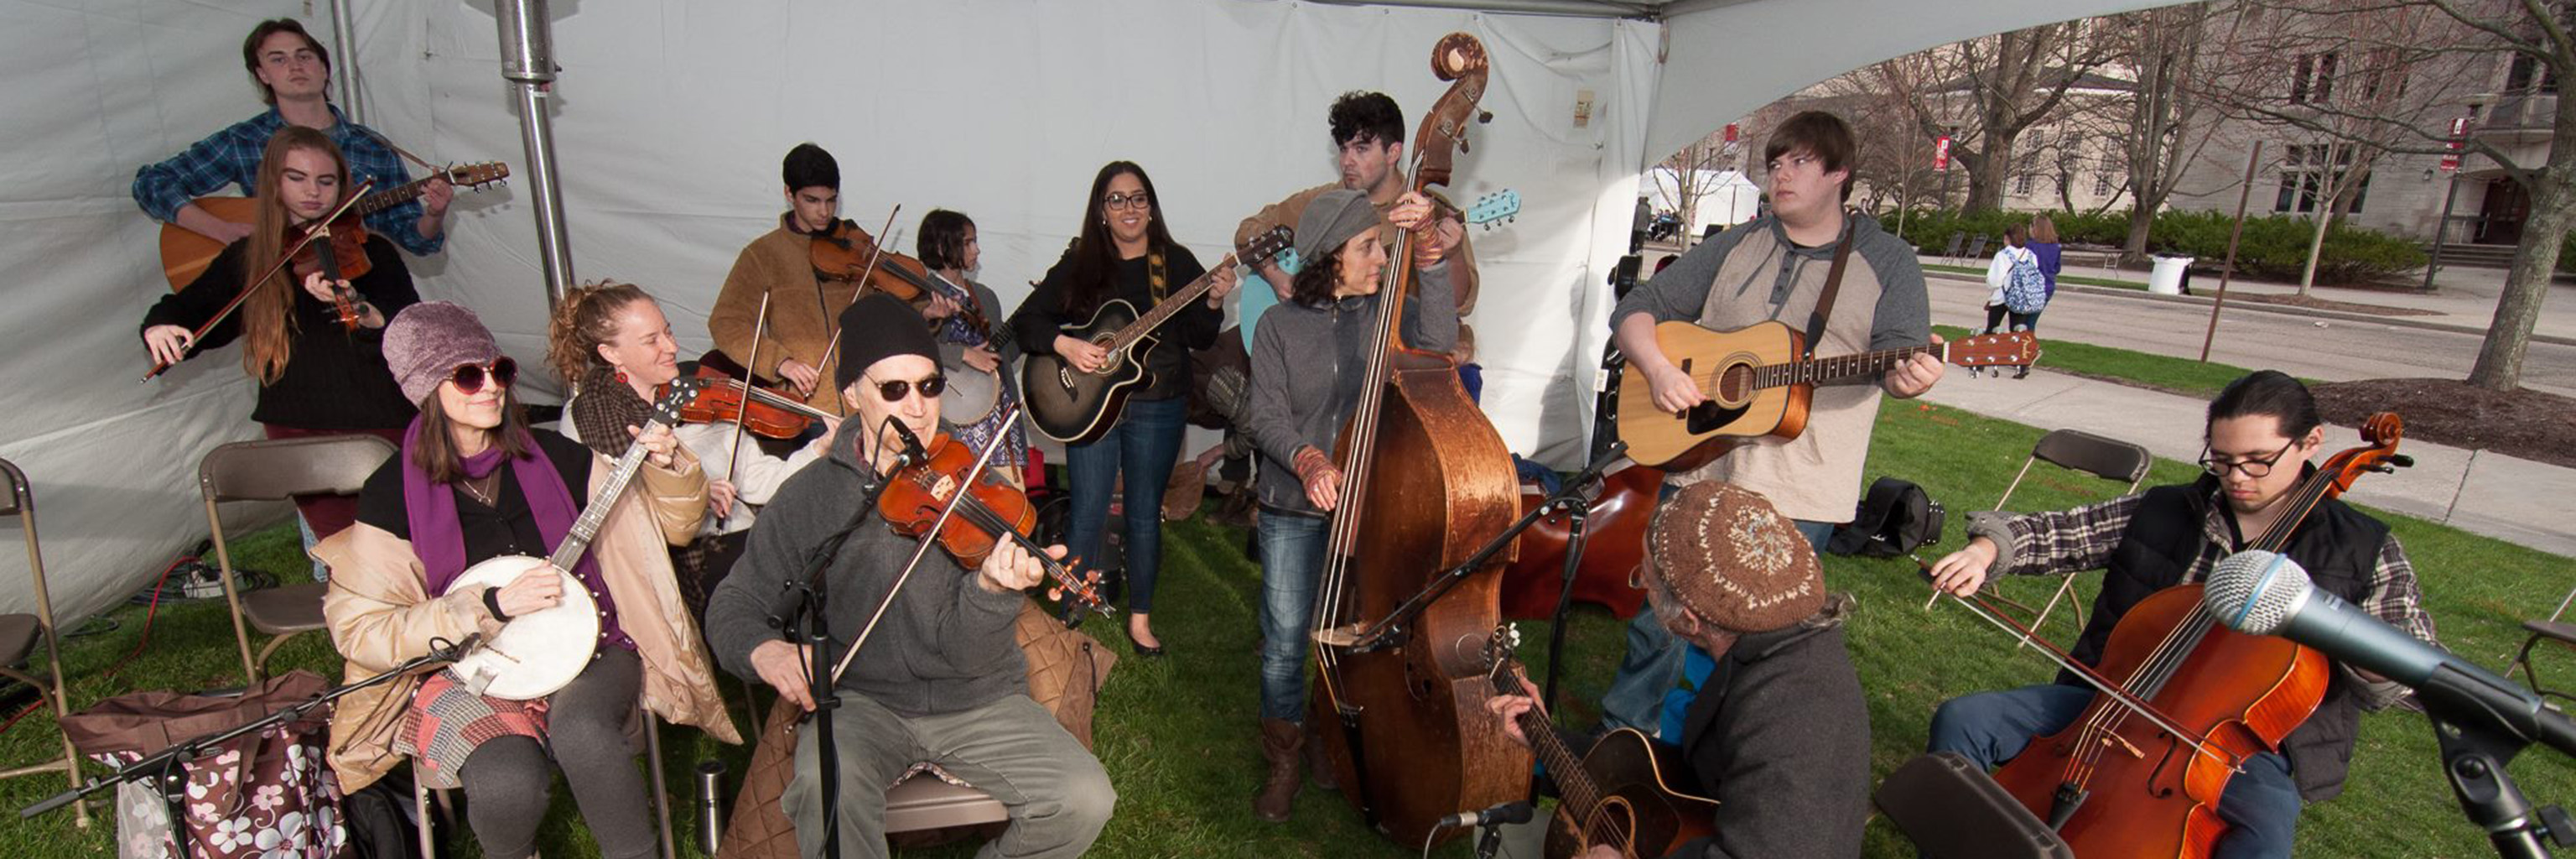 Musicians playing music in outdoor tent.